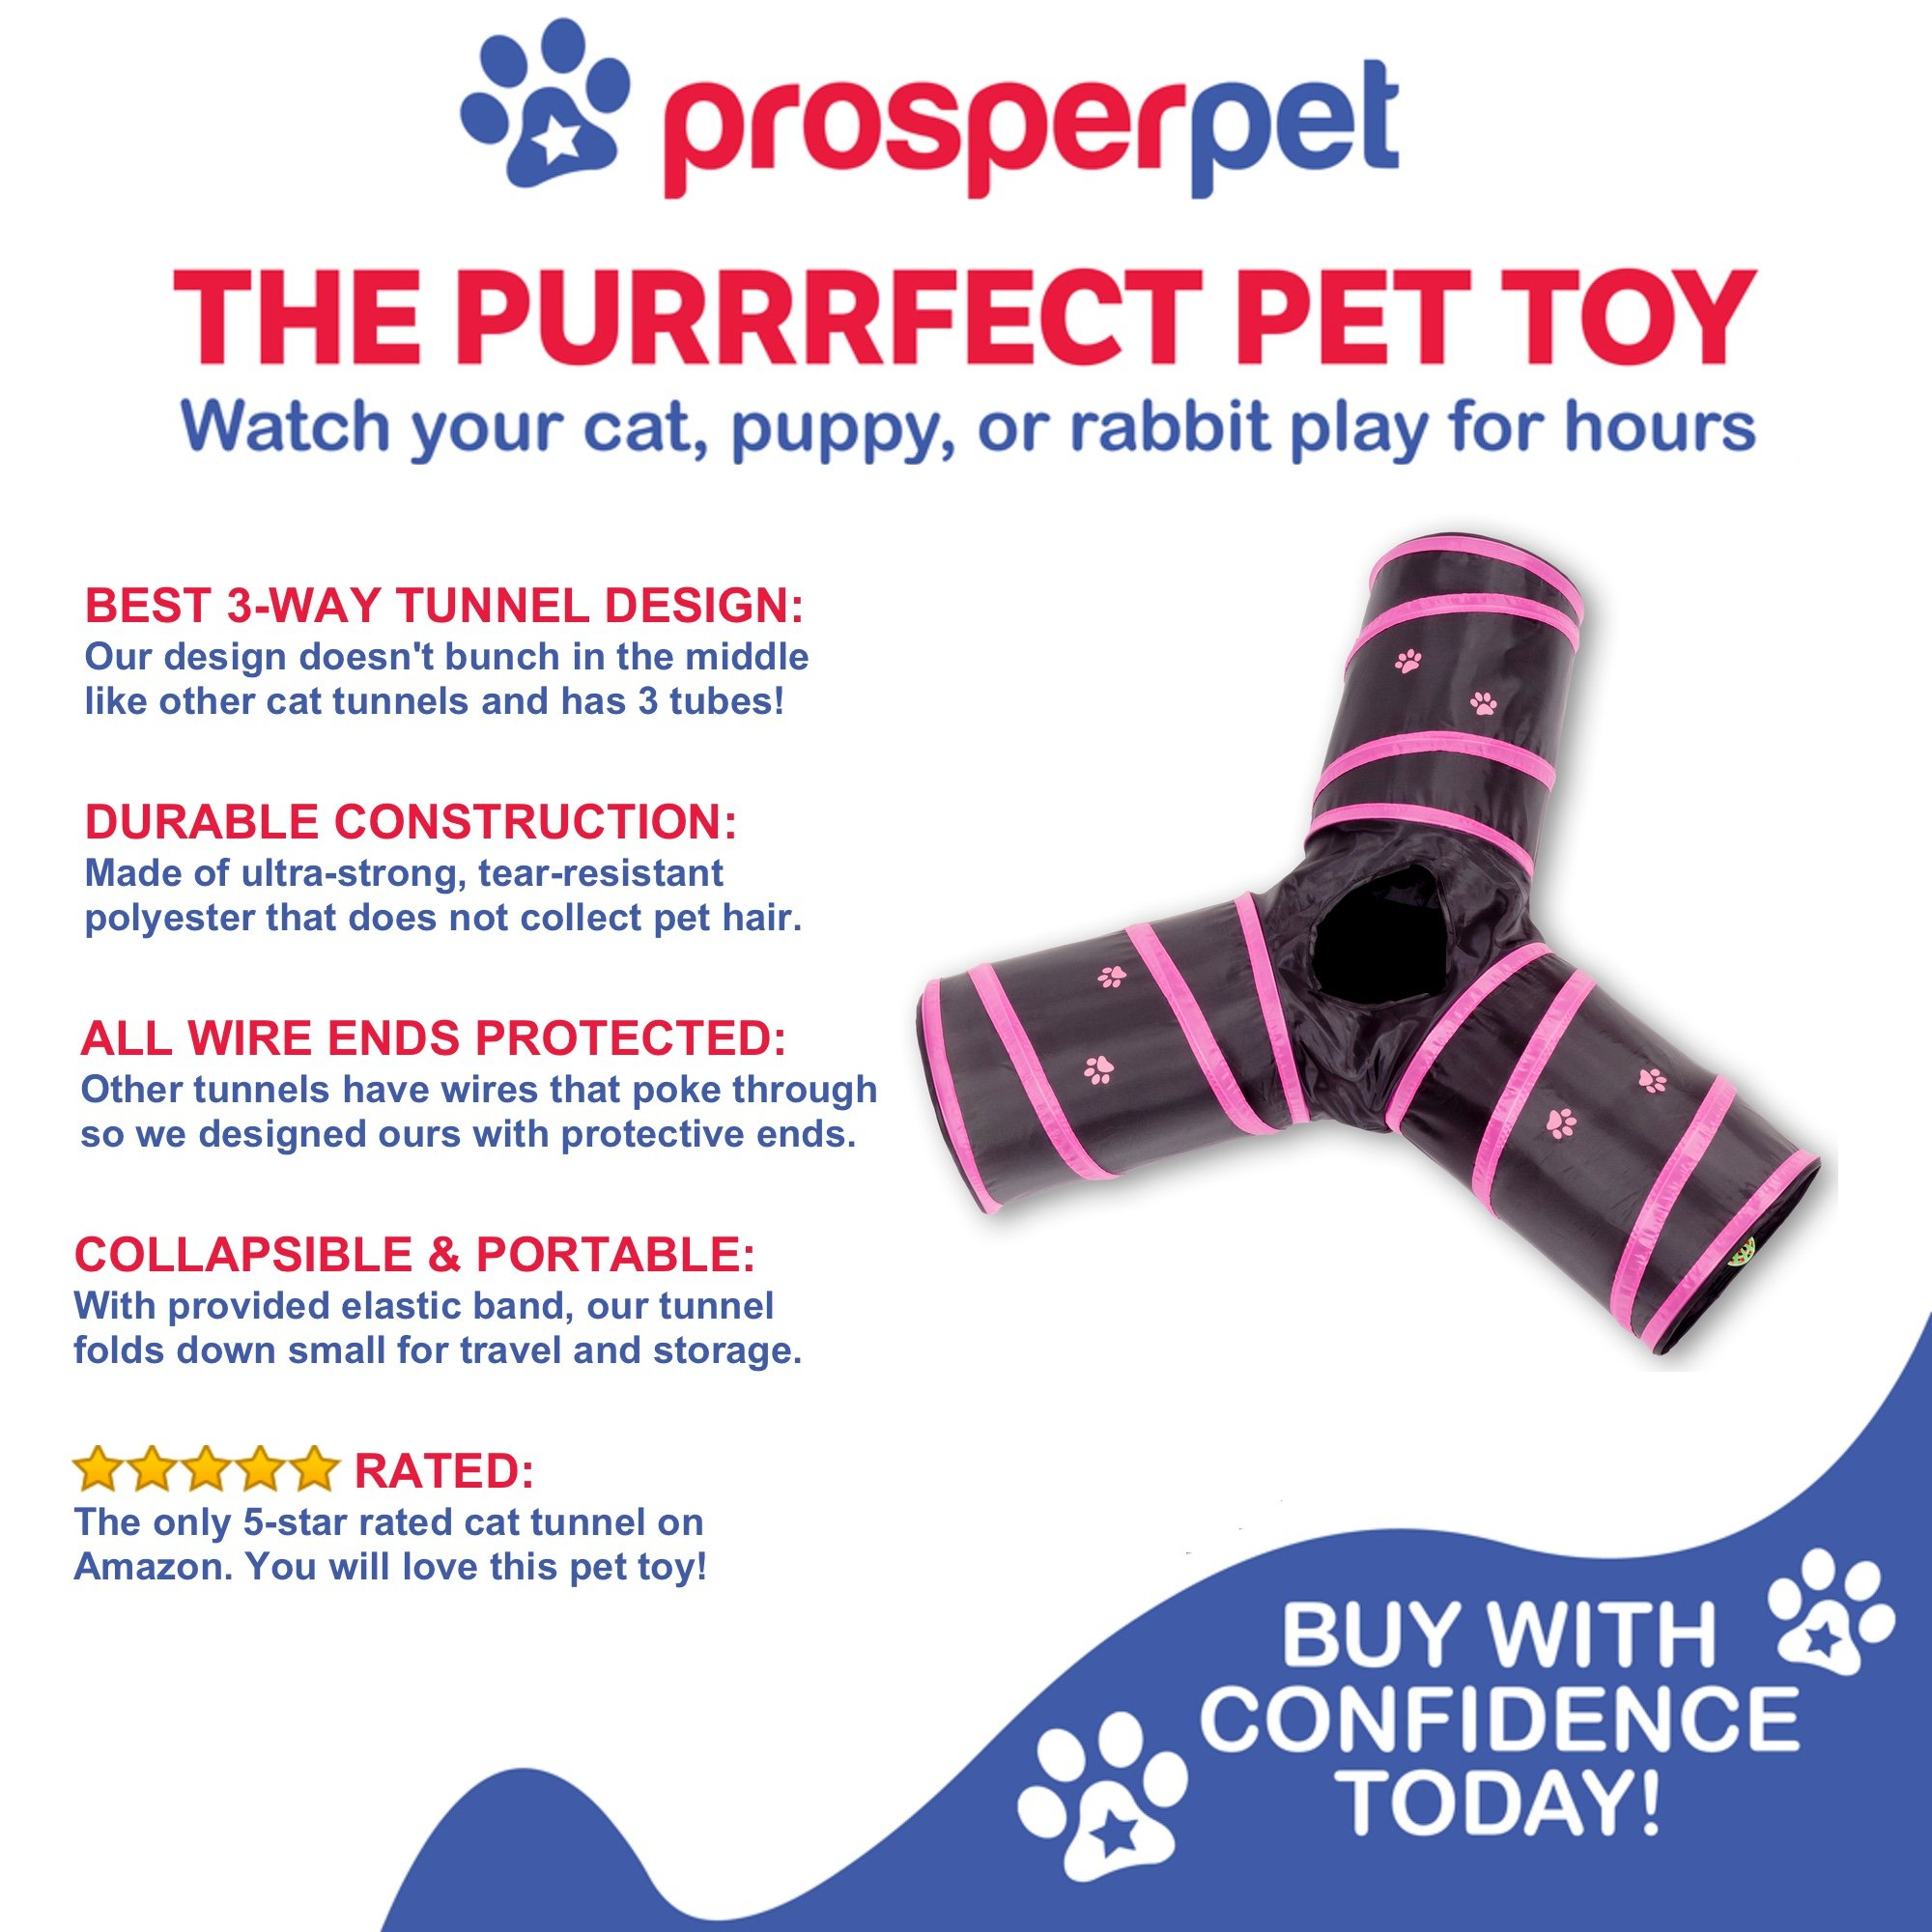 Prosper Pet Cat Tunnel - Collapsible 3 Way Play Toy - Interactive Tube Toys for Rabbits, Kittens, and Dogs - Black/Pink by Prosper Pet (Image #7)